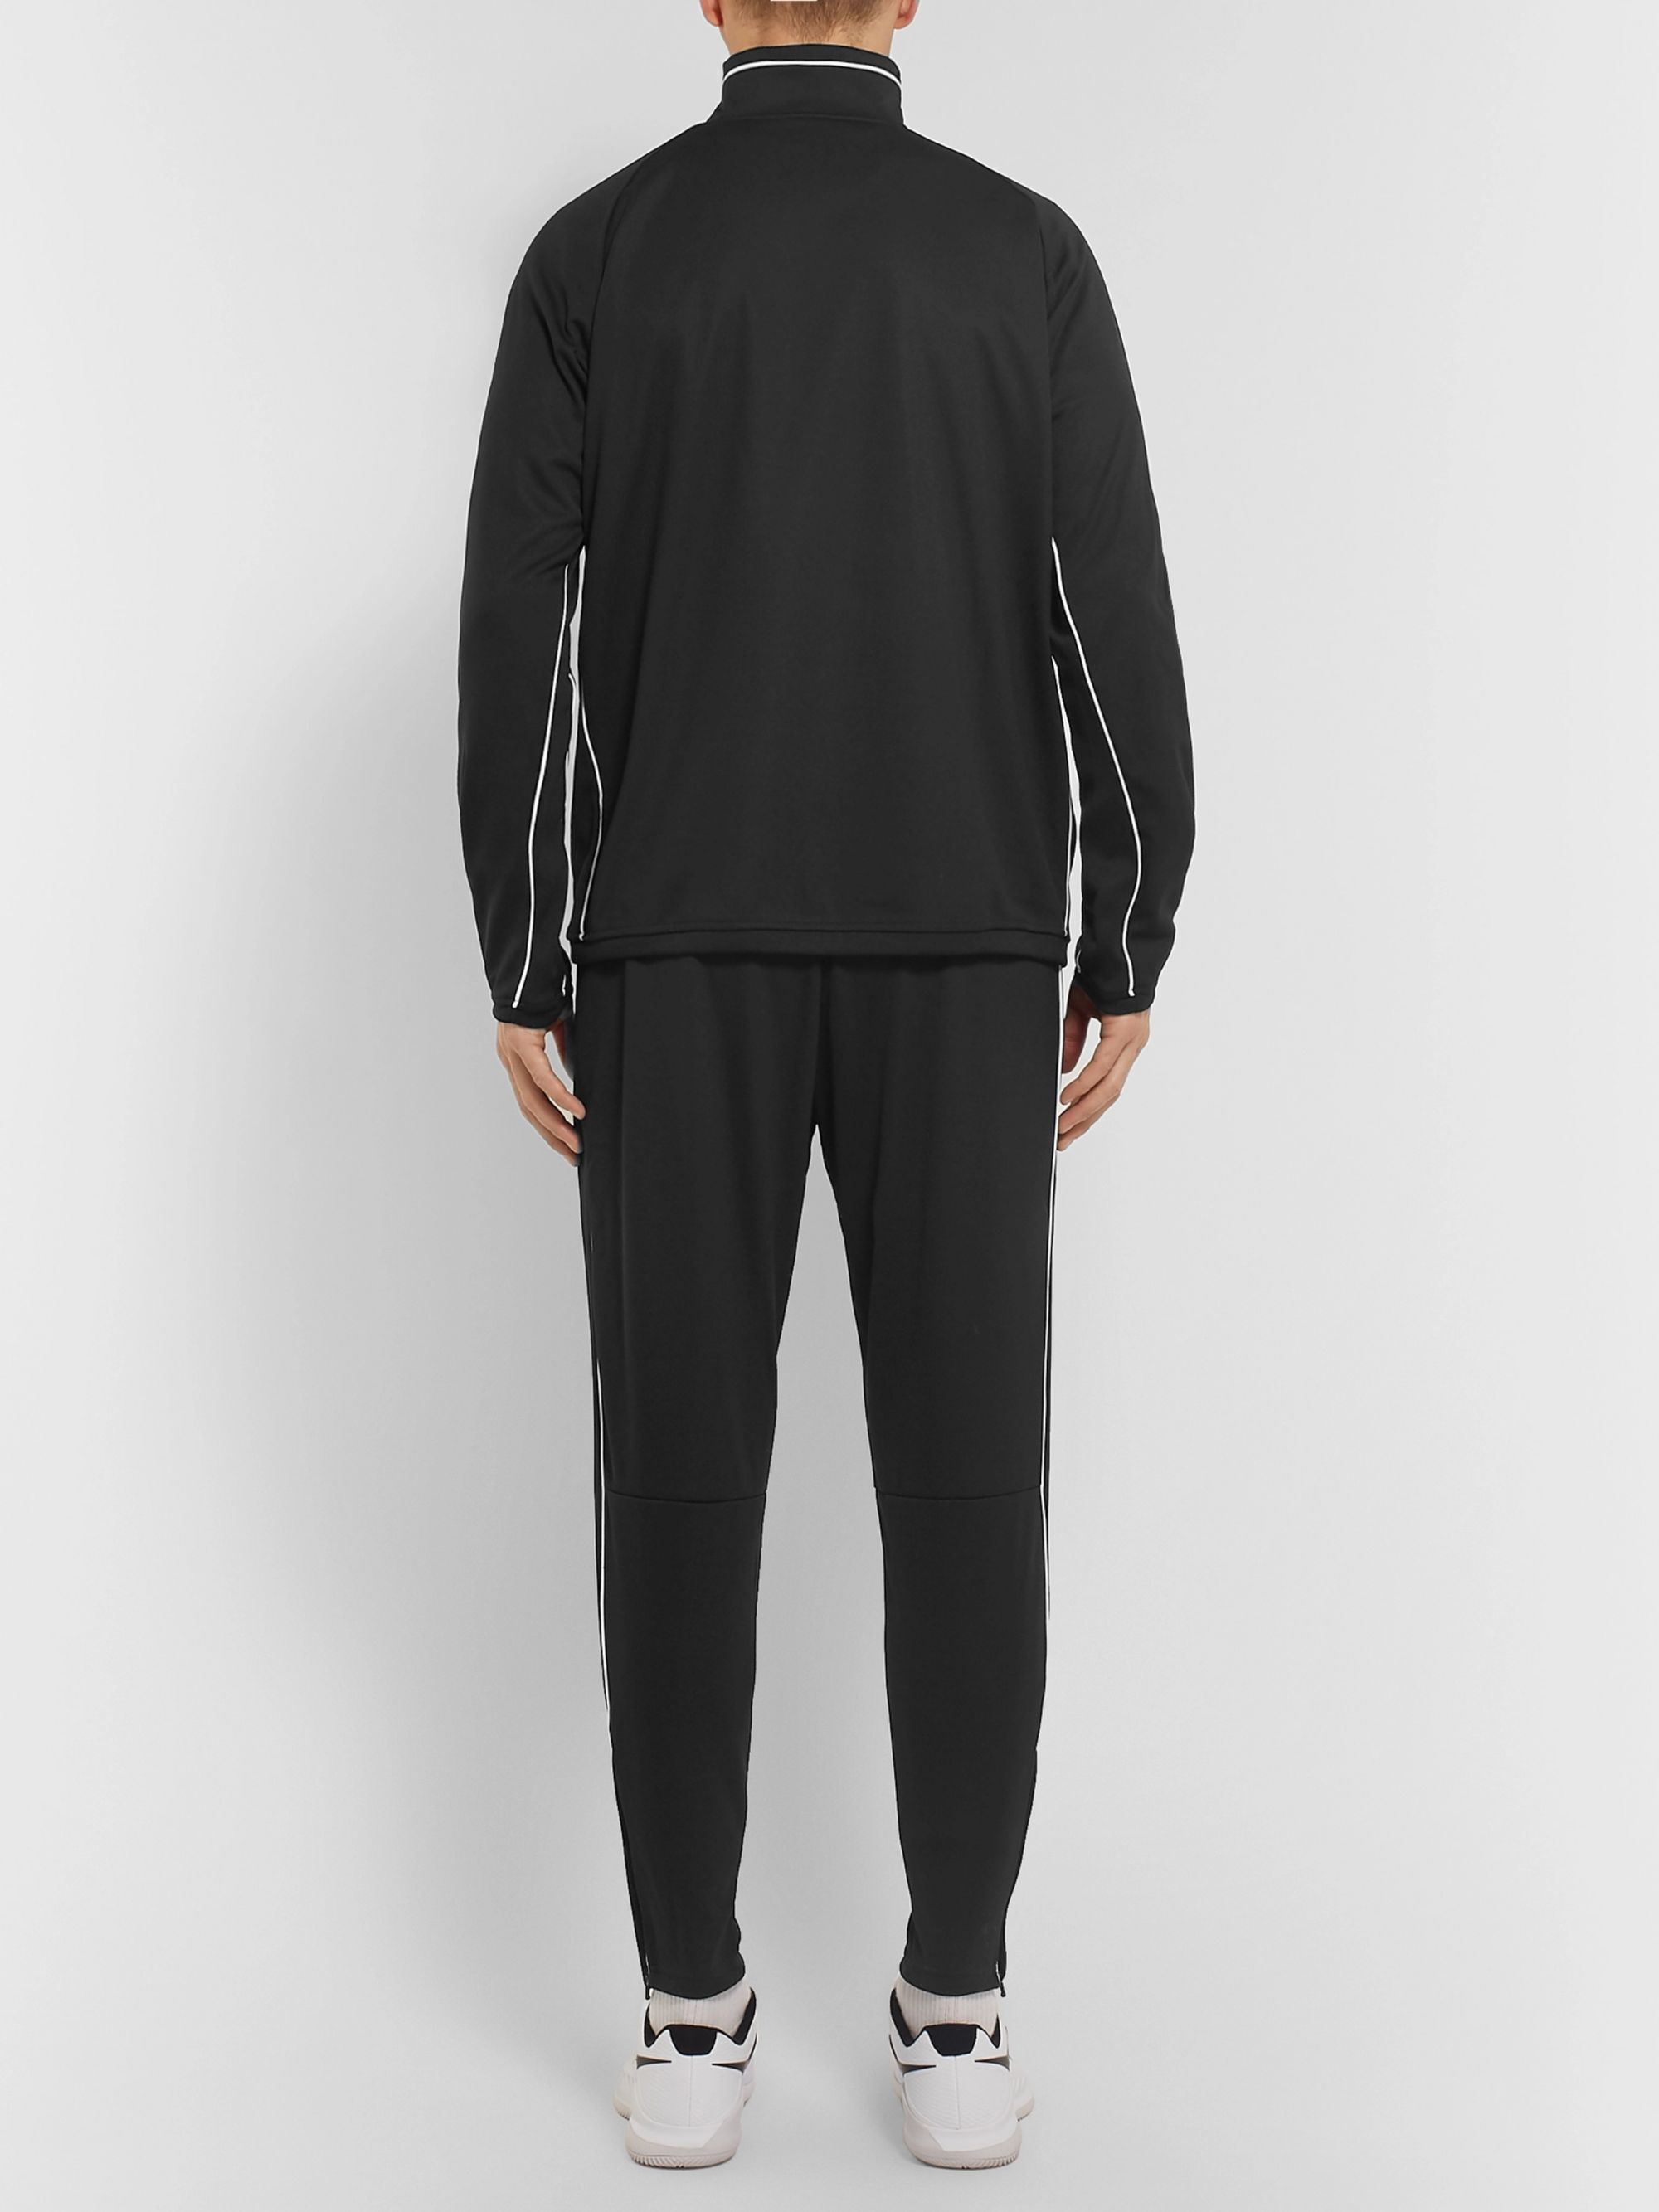 Nike Tennis NikeCourt Warm-Up Piqué Tracksuit